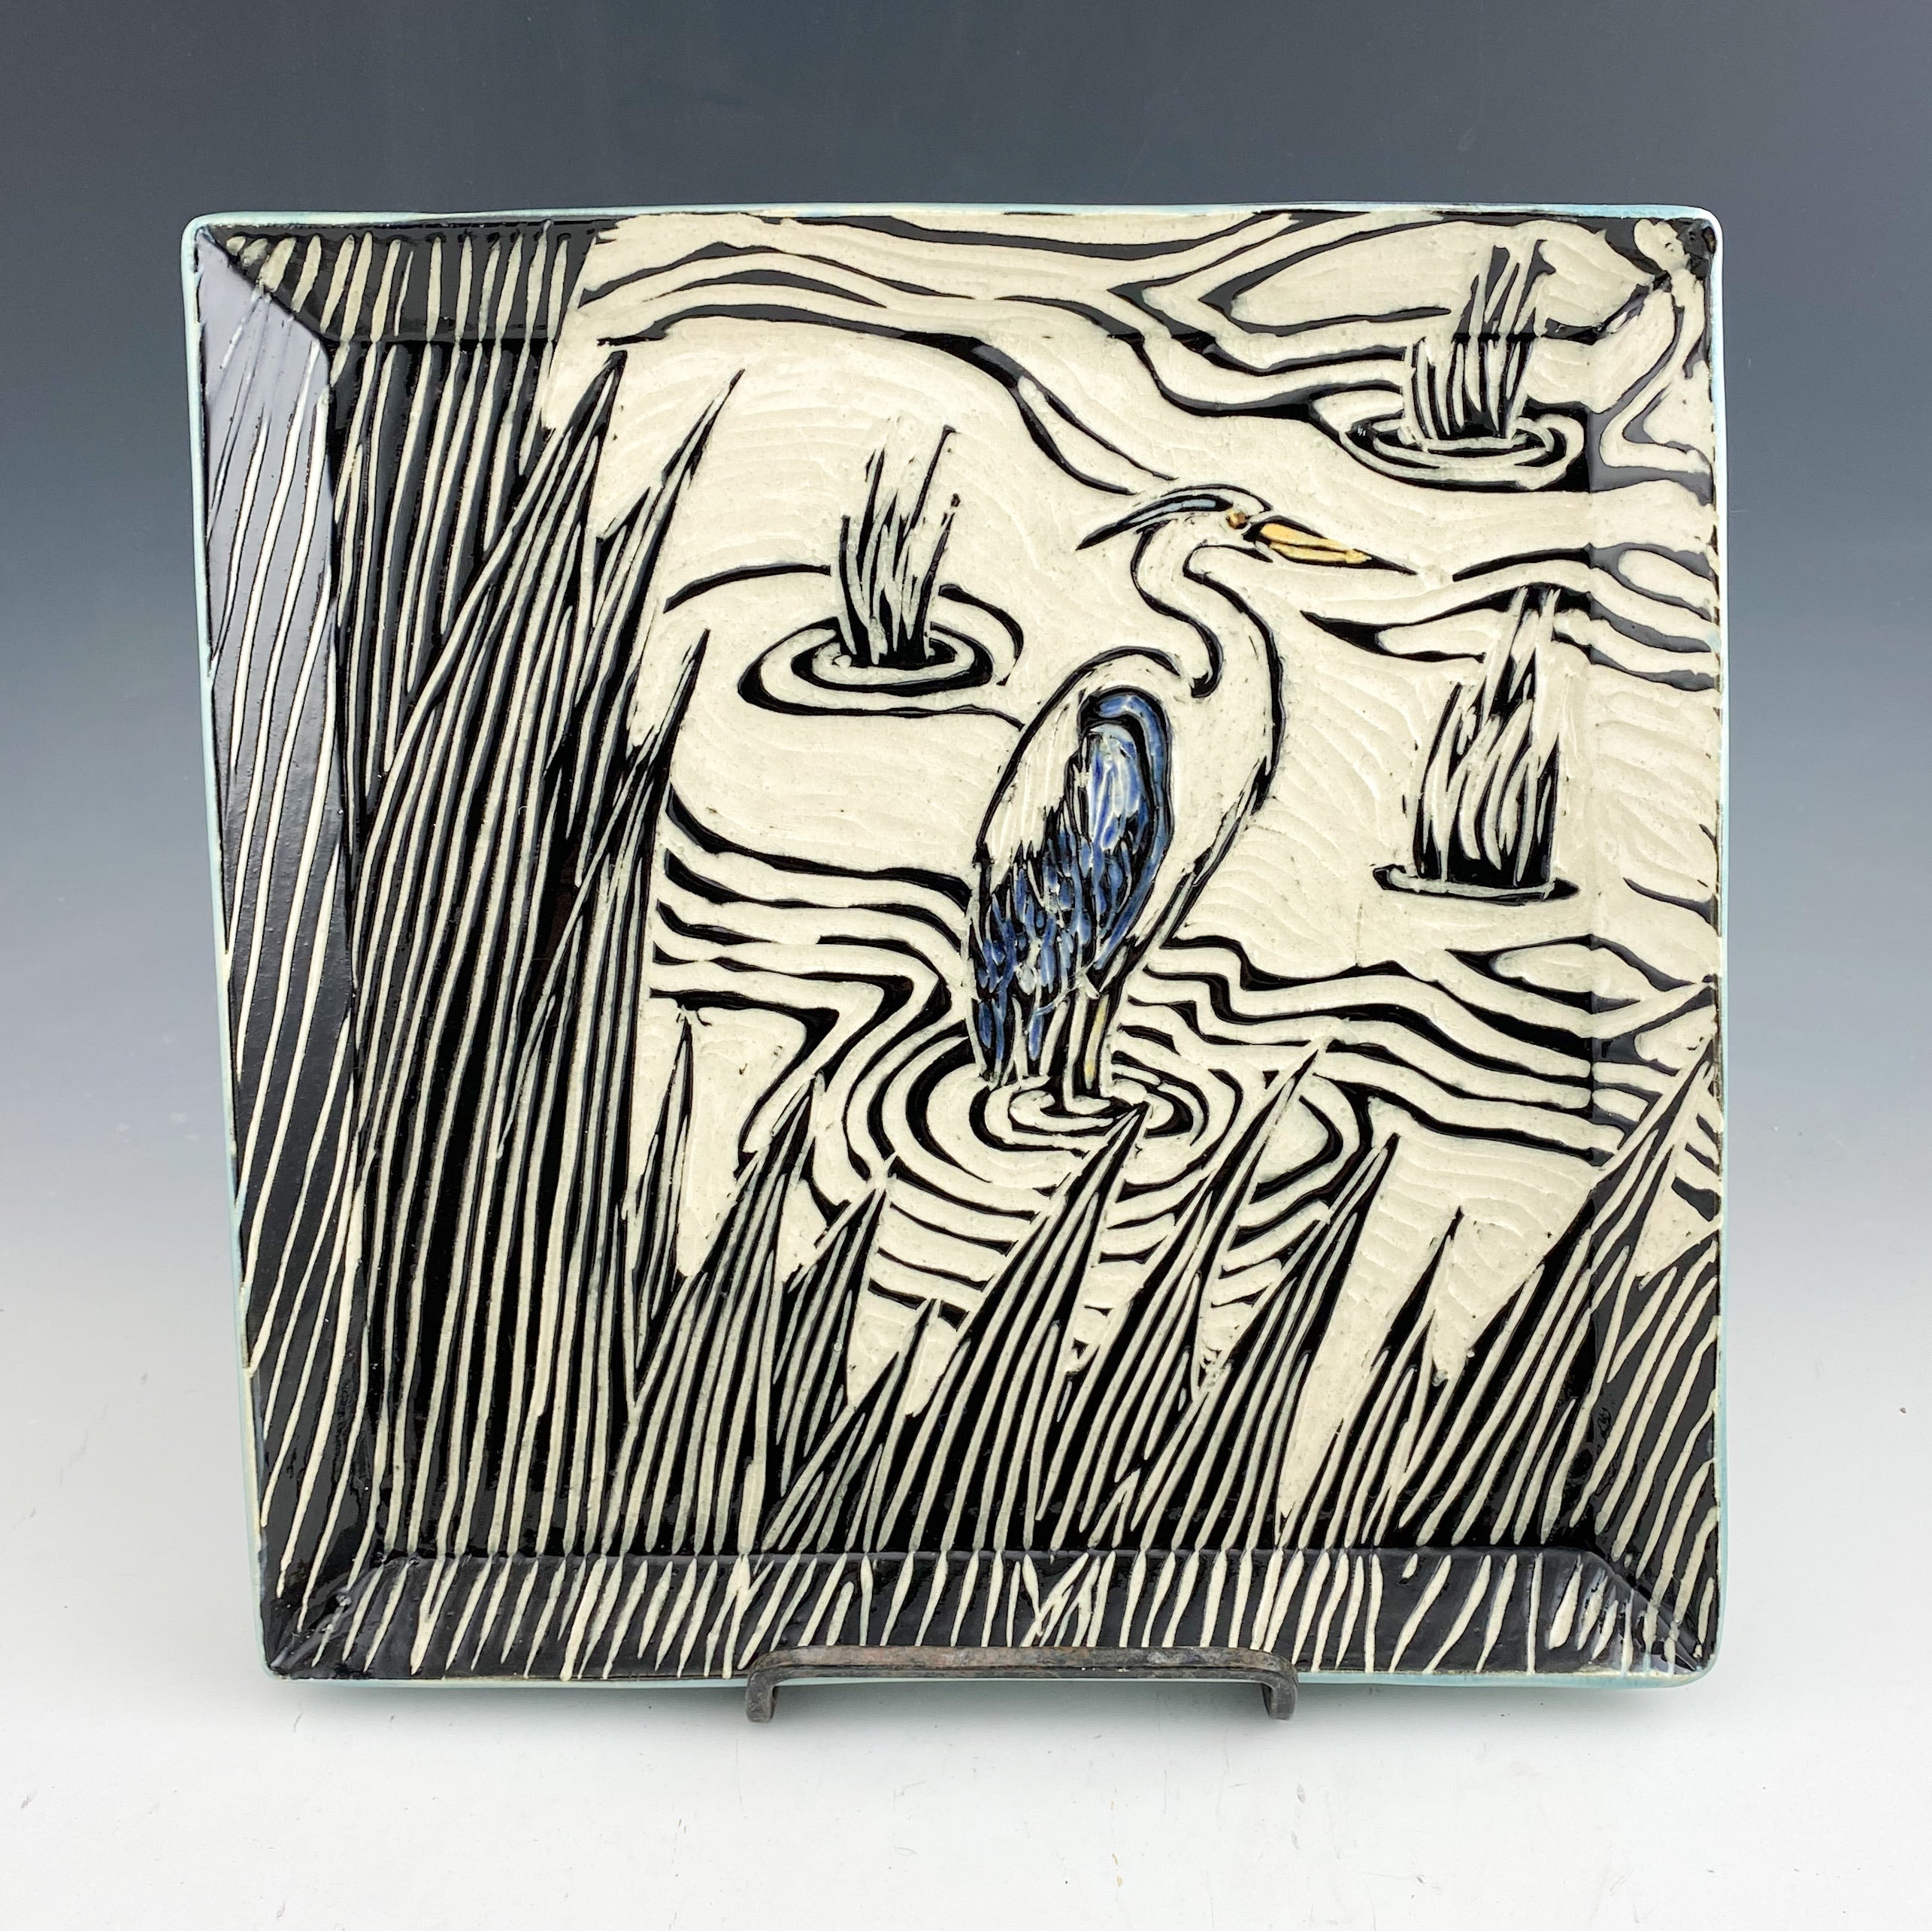 Marsh Wall Art Triptych Sgraffito Pottery in Blue